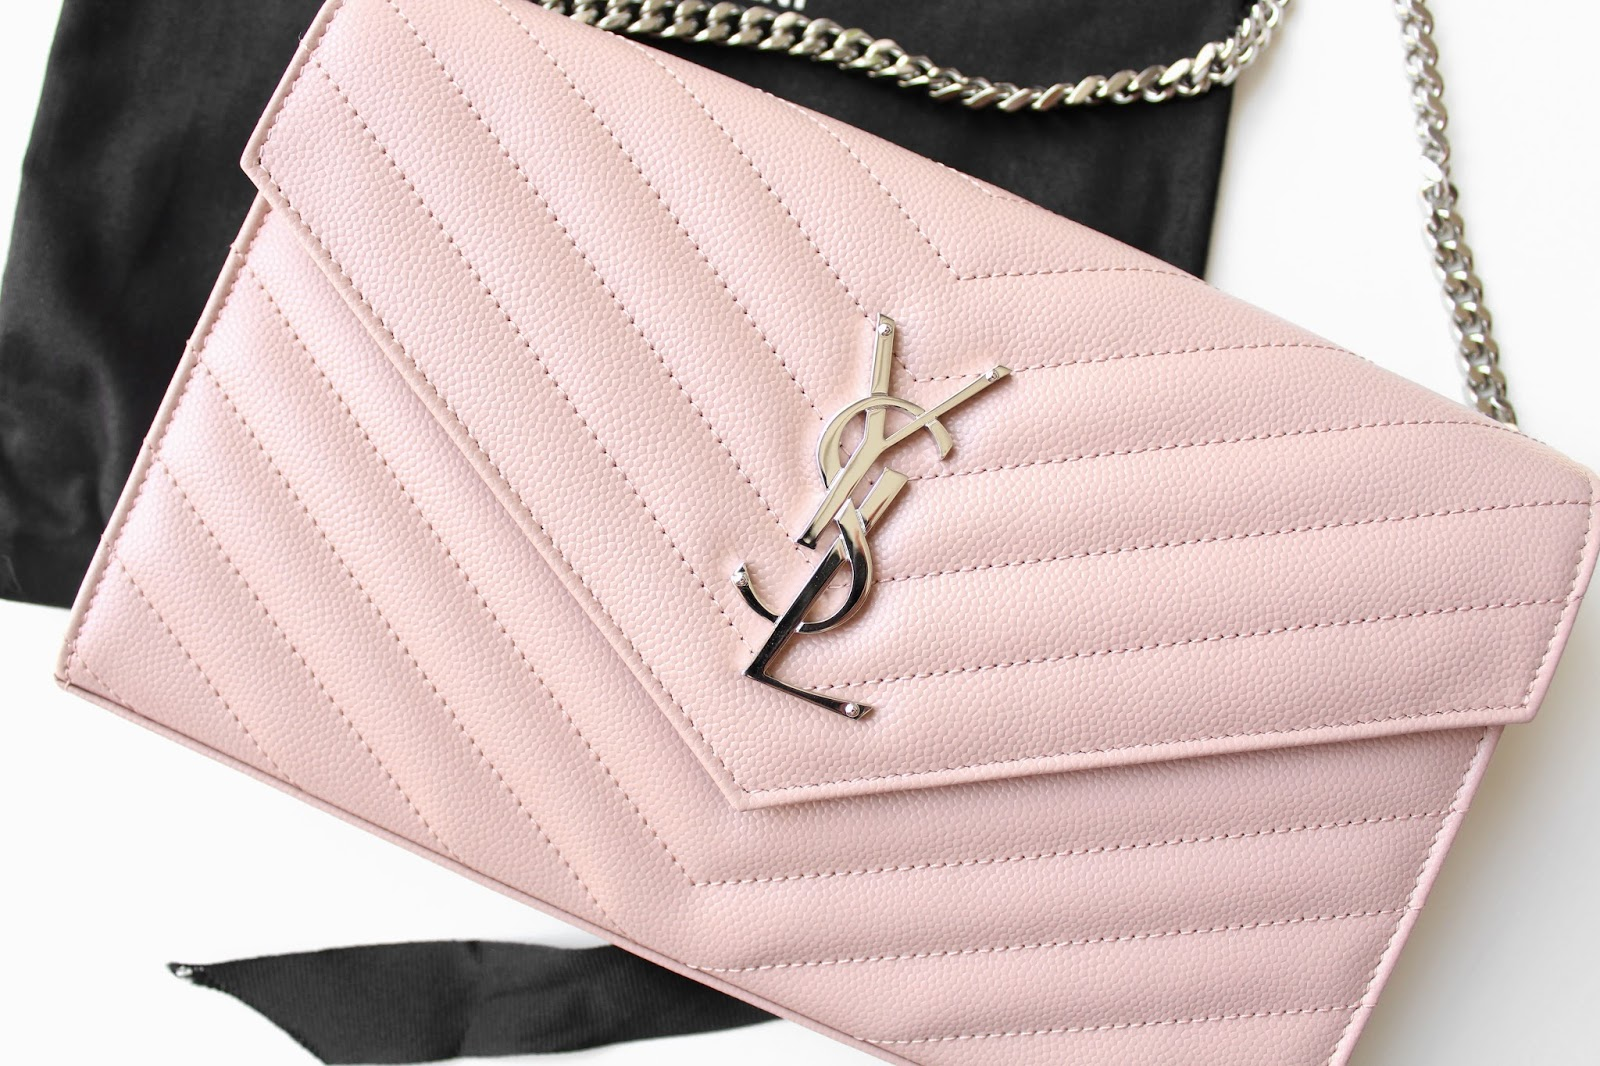 Saint Laurent Monogram Chain Wallet in Pale Blush Textured Matalasse Leather with Silver Hardware. / Life in Excess Blog